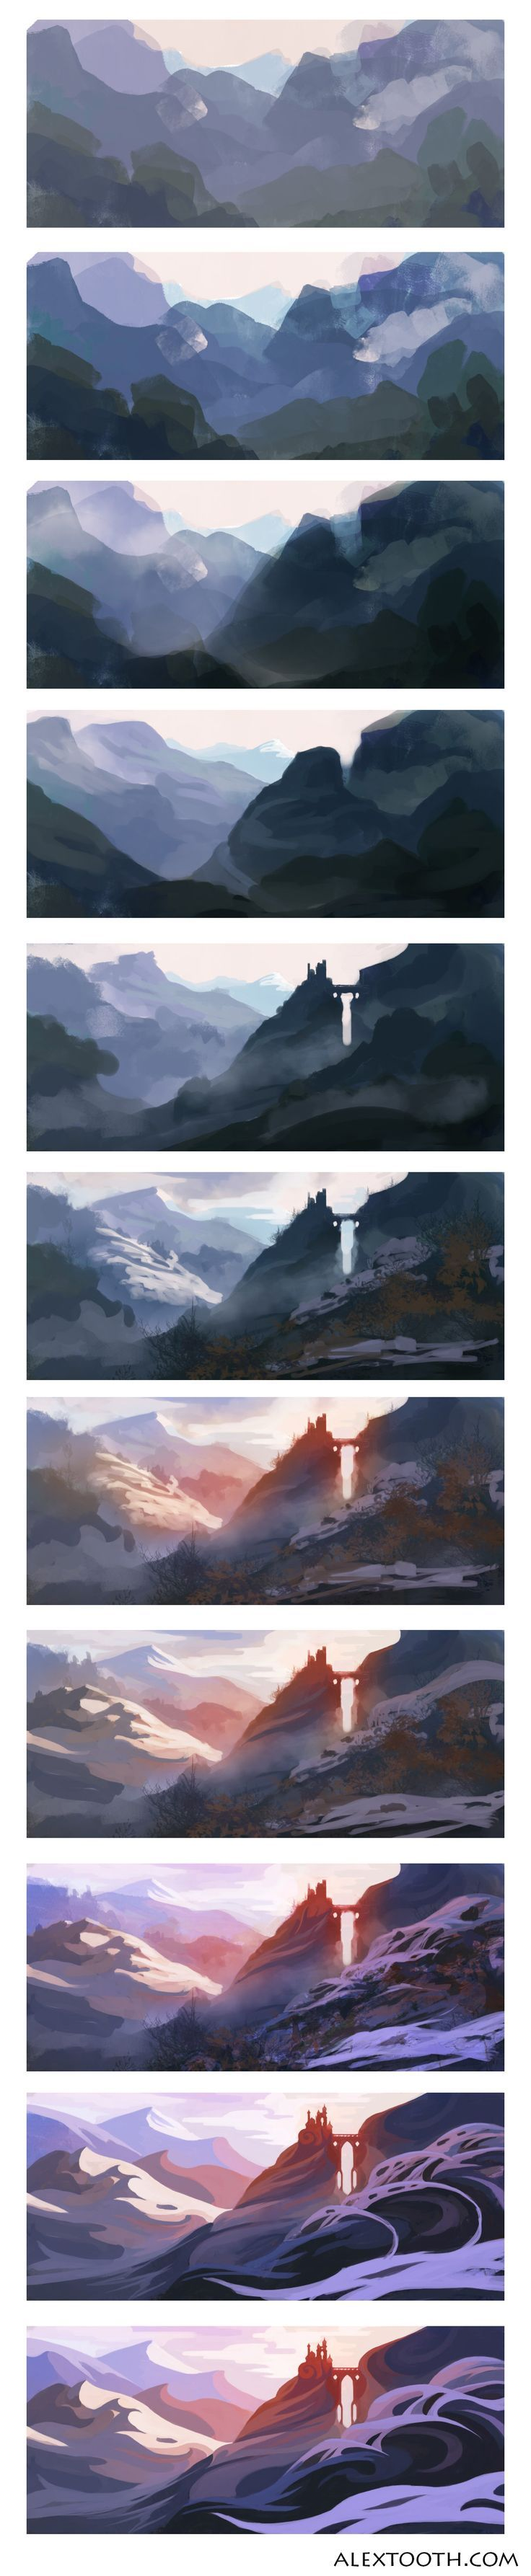 Mountain landscape step by step digital painting projects to try digital painting tutorials baditri Images